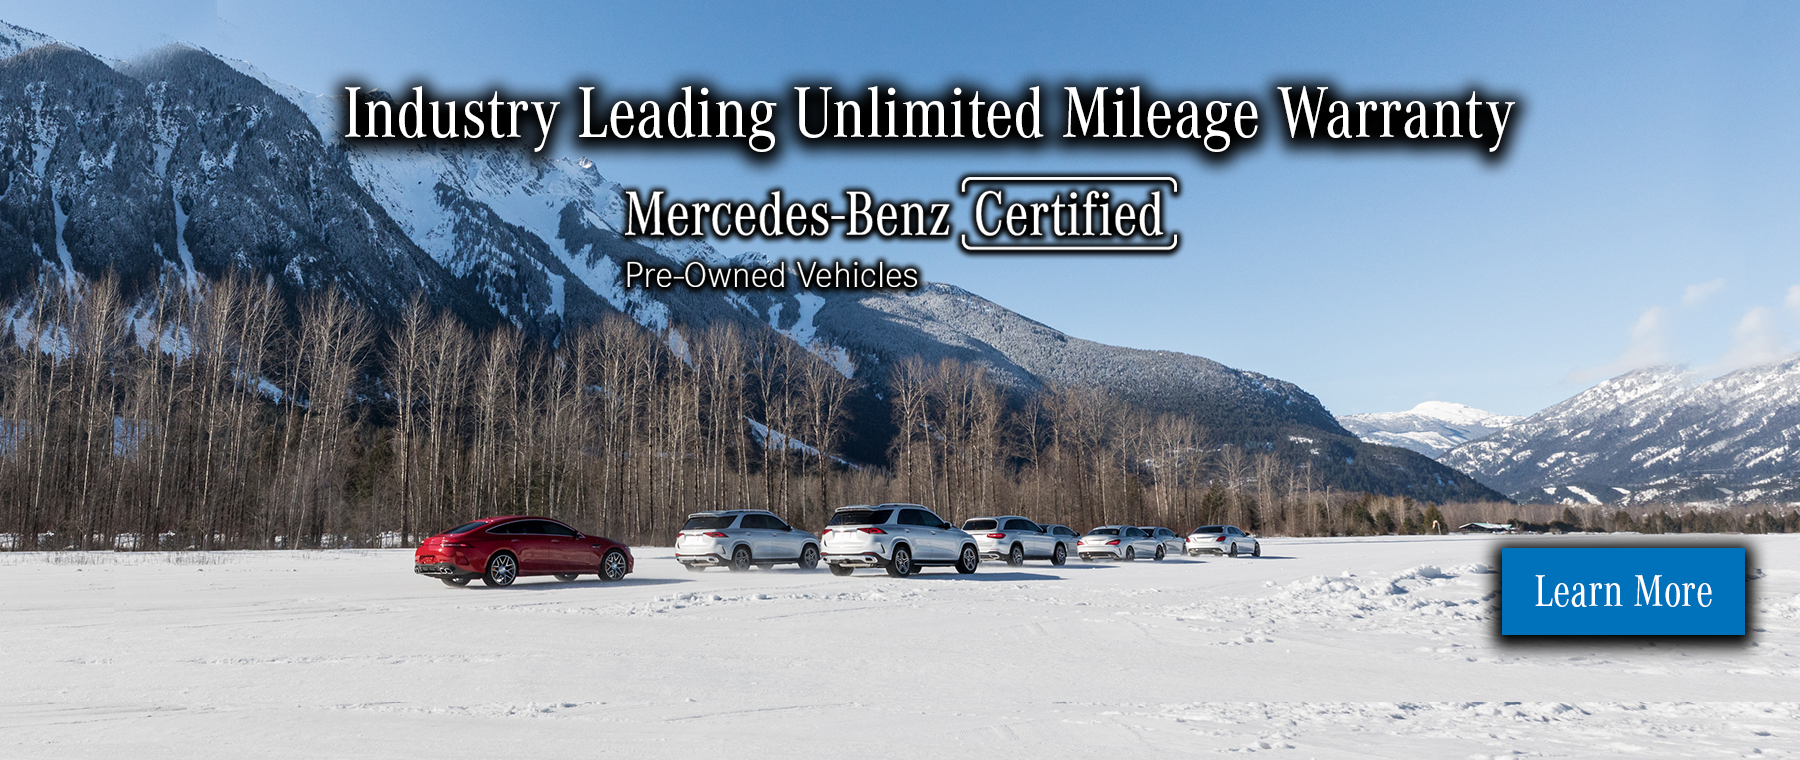 Winter Event - CPO Hero - Unlimited Leading Mileage Warranty